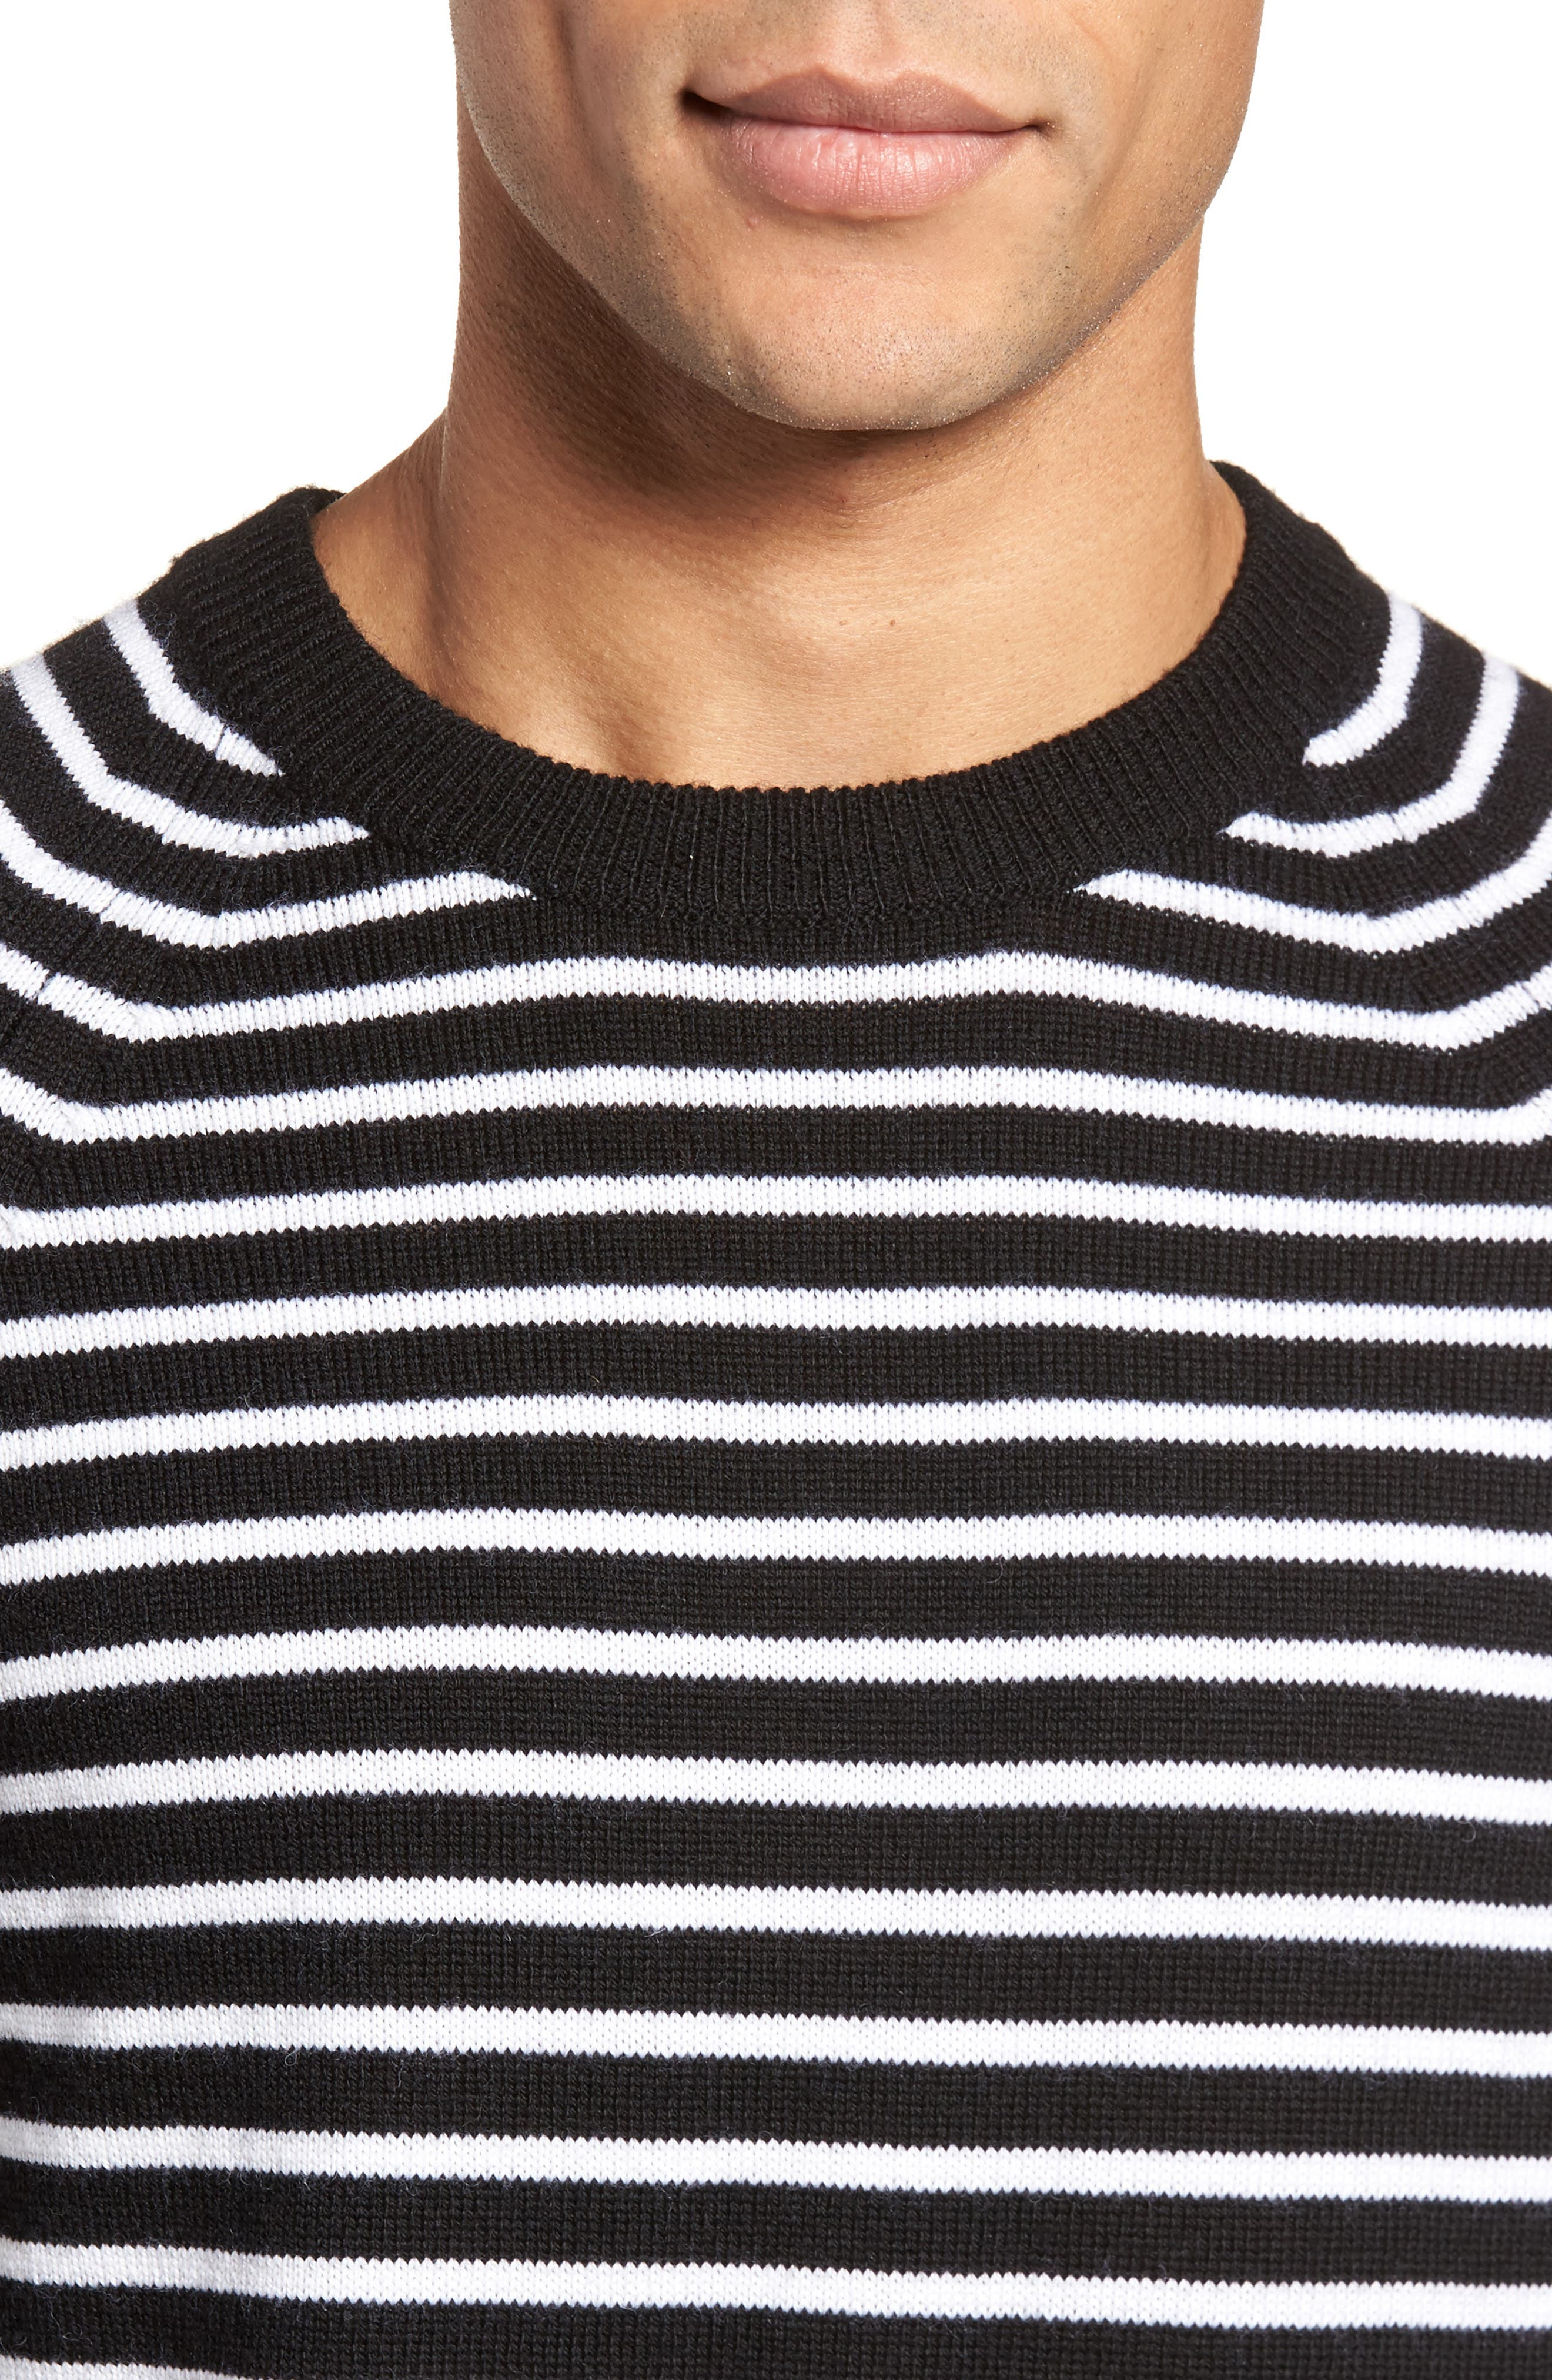 Regular Fit Striped Wool Sweater,                             Alternate thumbnail 4, color,                             001